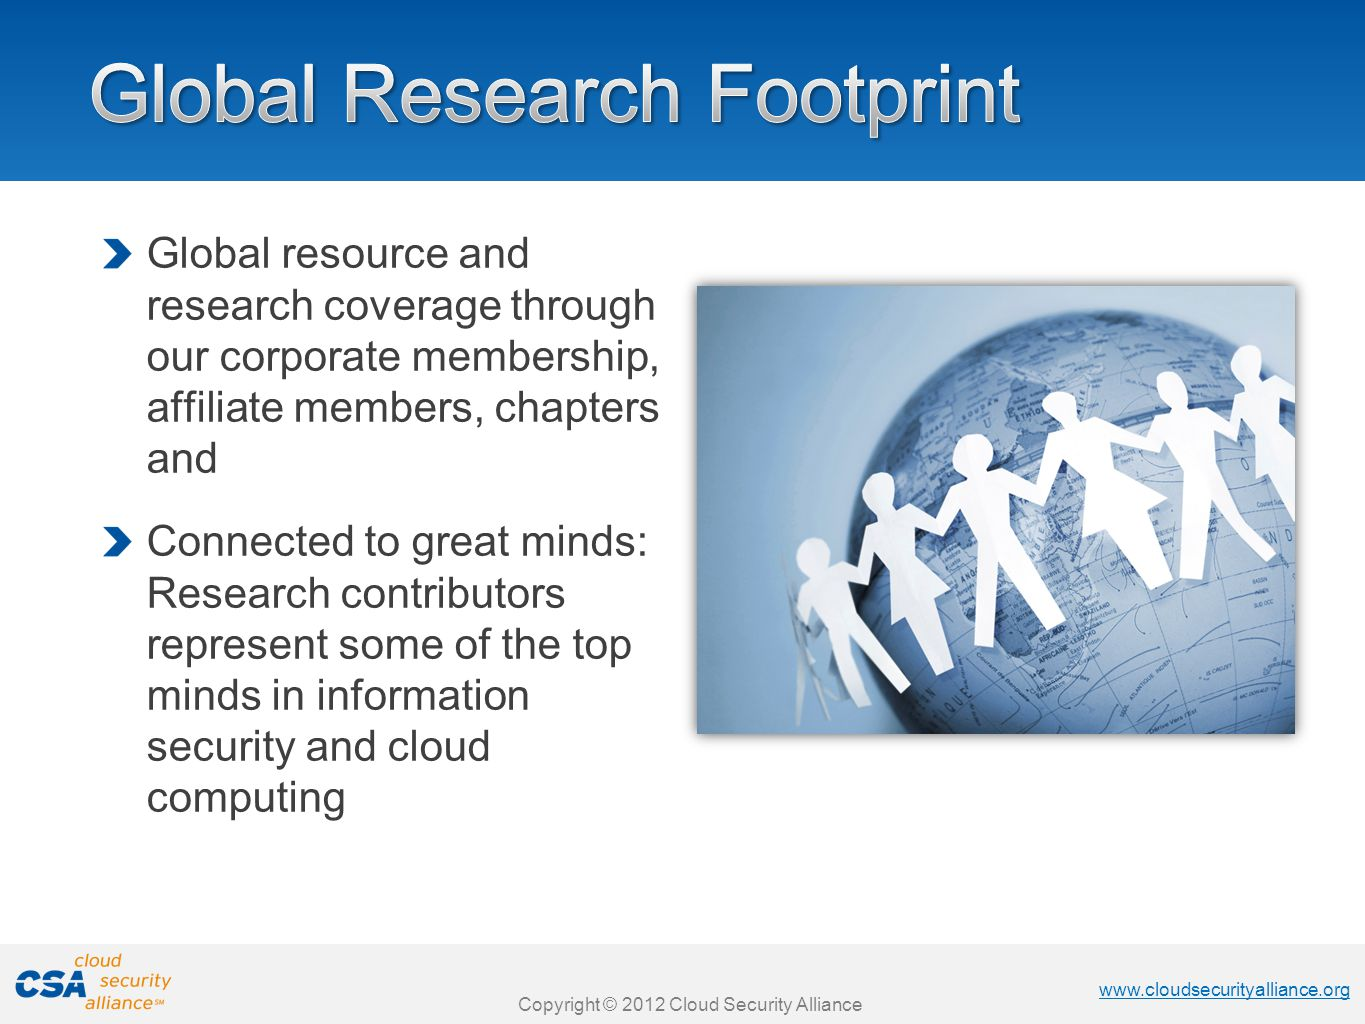 Global Research Footprint